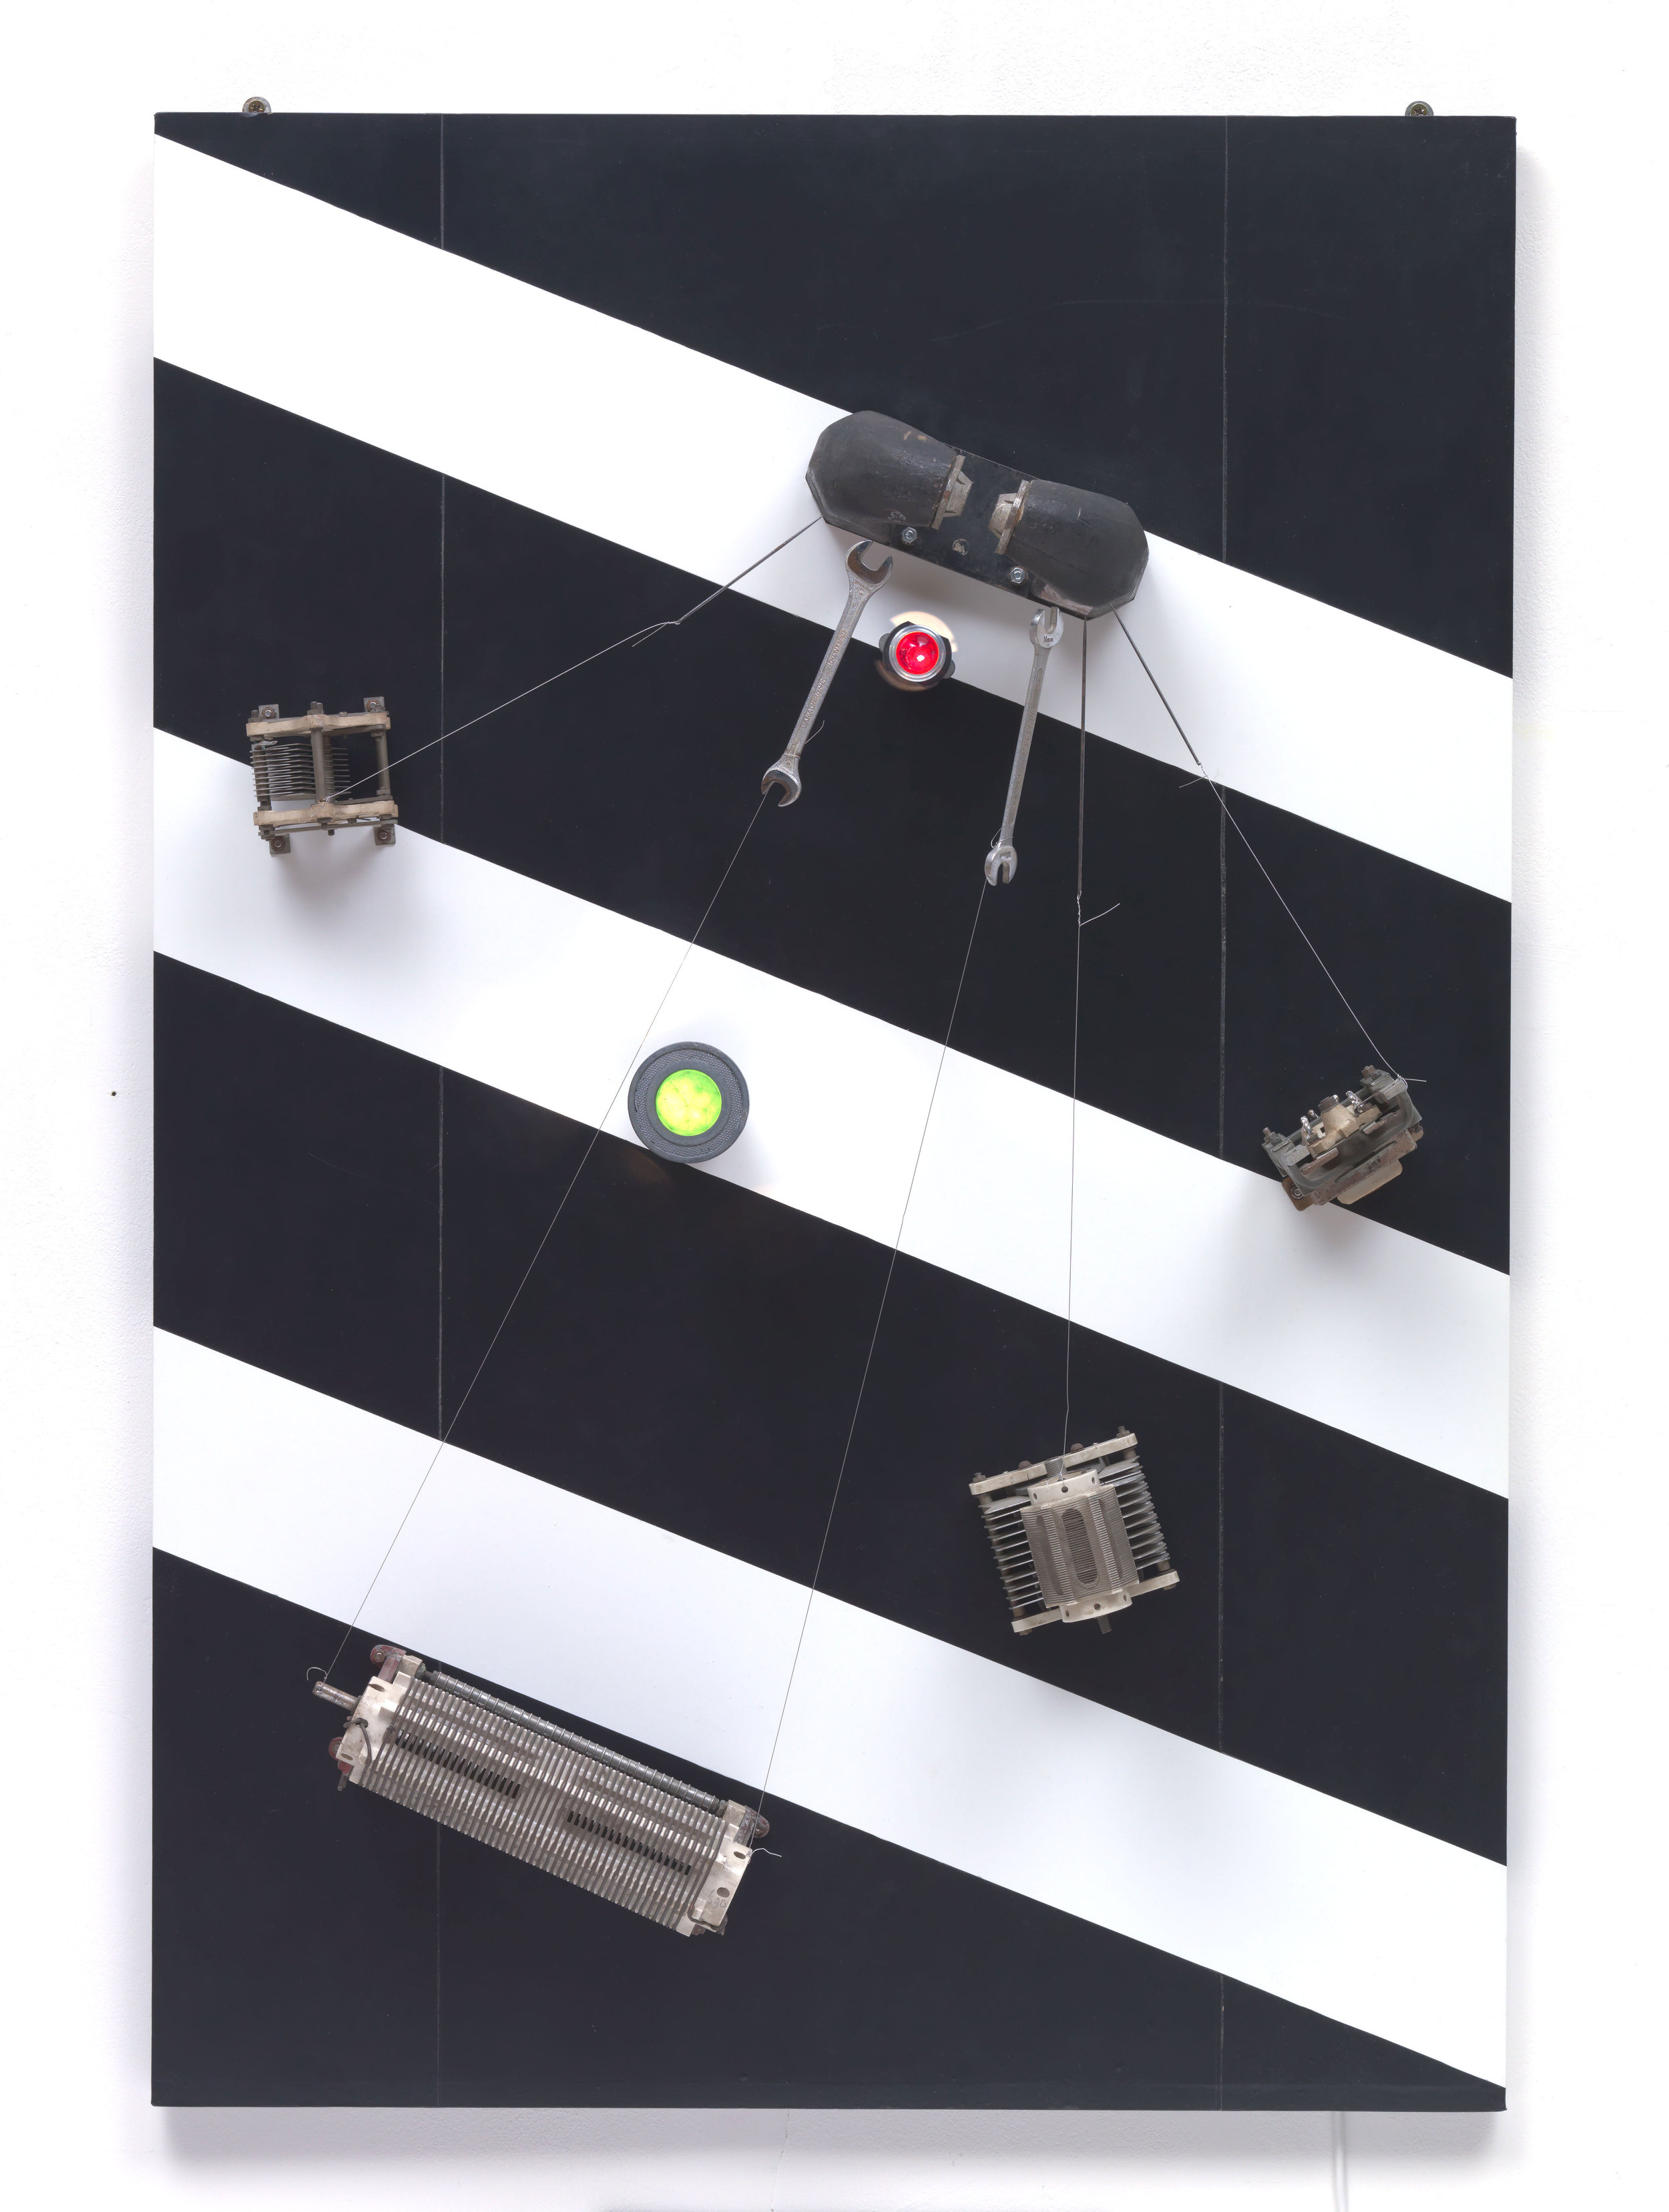 Telepainting  1964 Ceramic, iron, lamps, magnet, nylon thread, plastic, rheostats, steel screwdriver, vinyl, wood 110.1 x 75.2 x 17 cm Private Collection © ADAGP, Paris and DACS, London 2019 Photo: © Tate (Andrew Dunkley and Mark Heathcote)